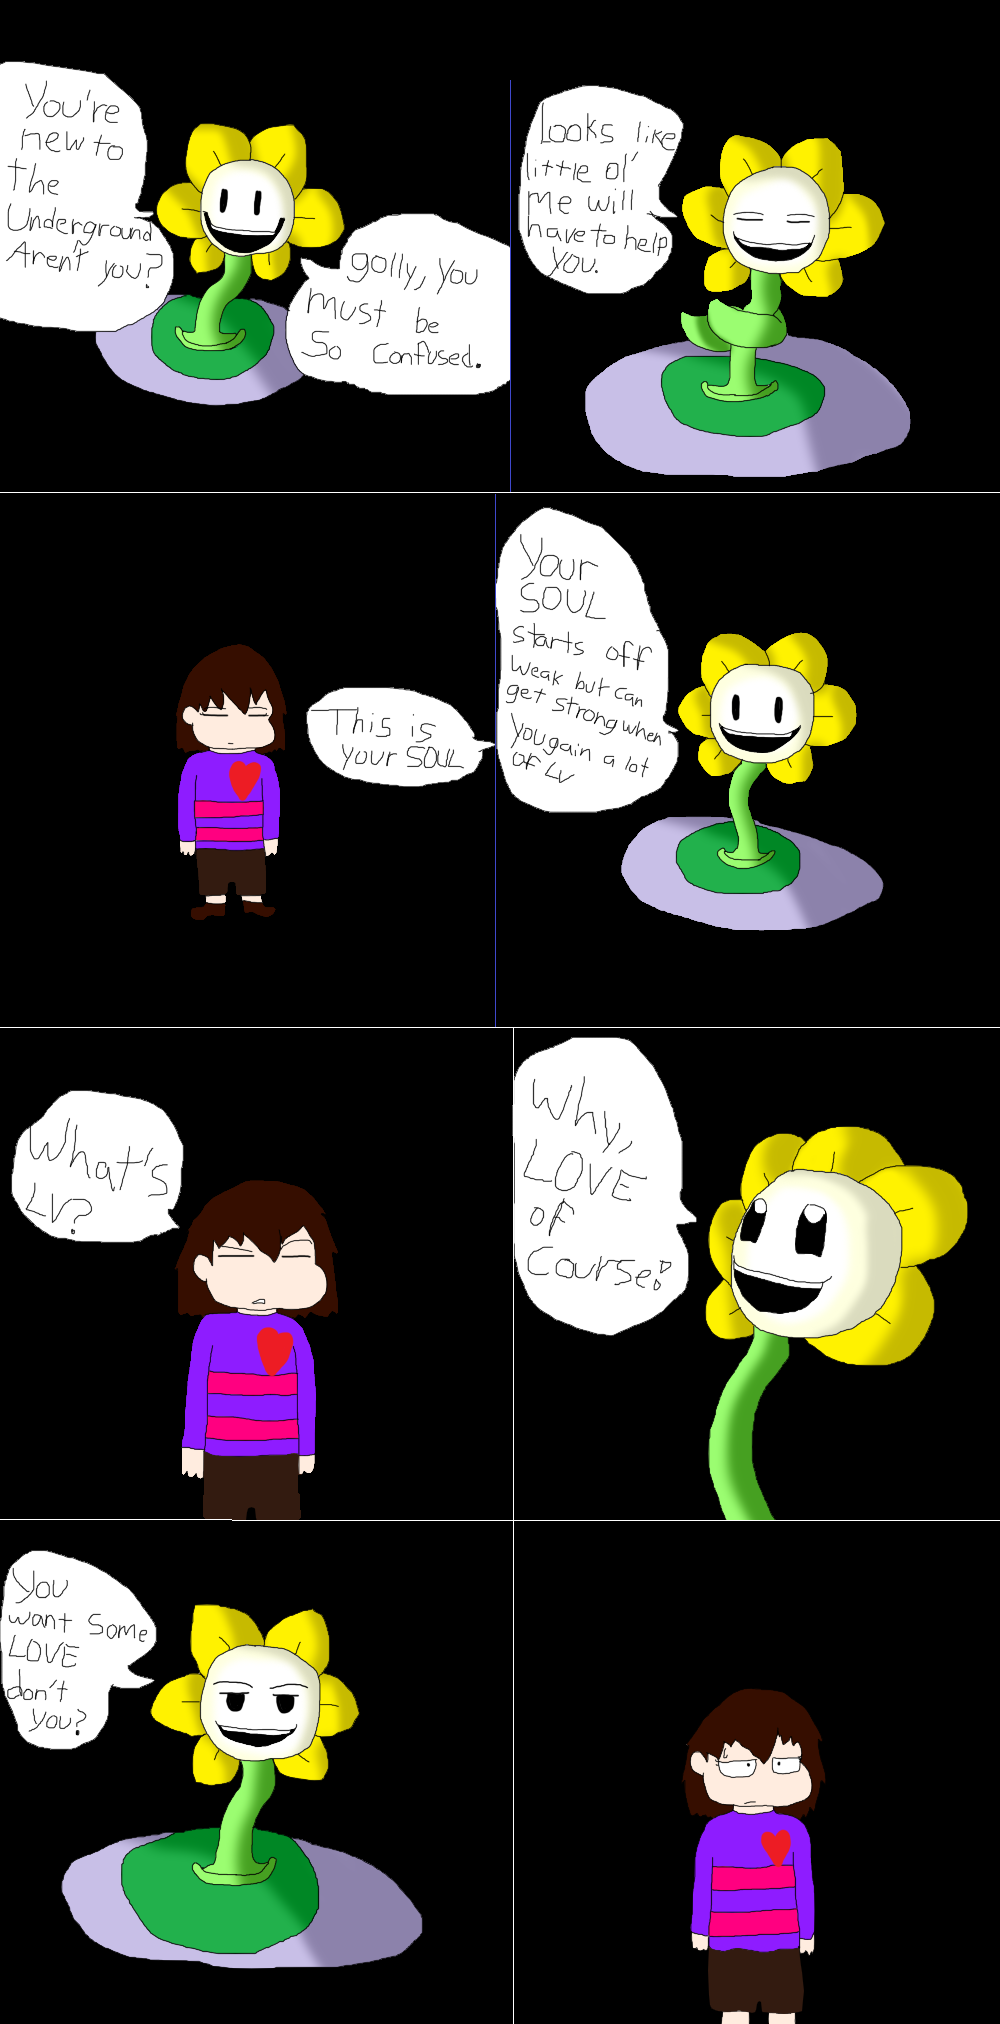 Undertale AU comic page 2 by WolfLover12321 on DeviantArt